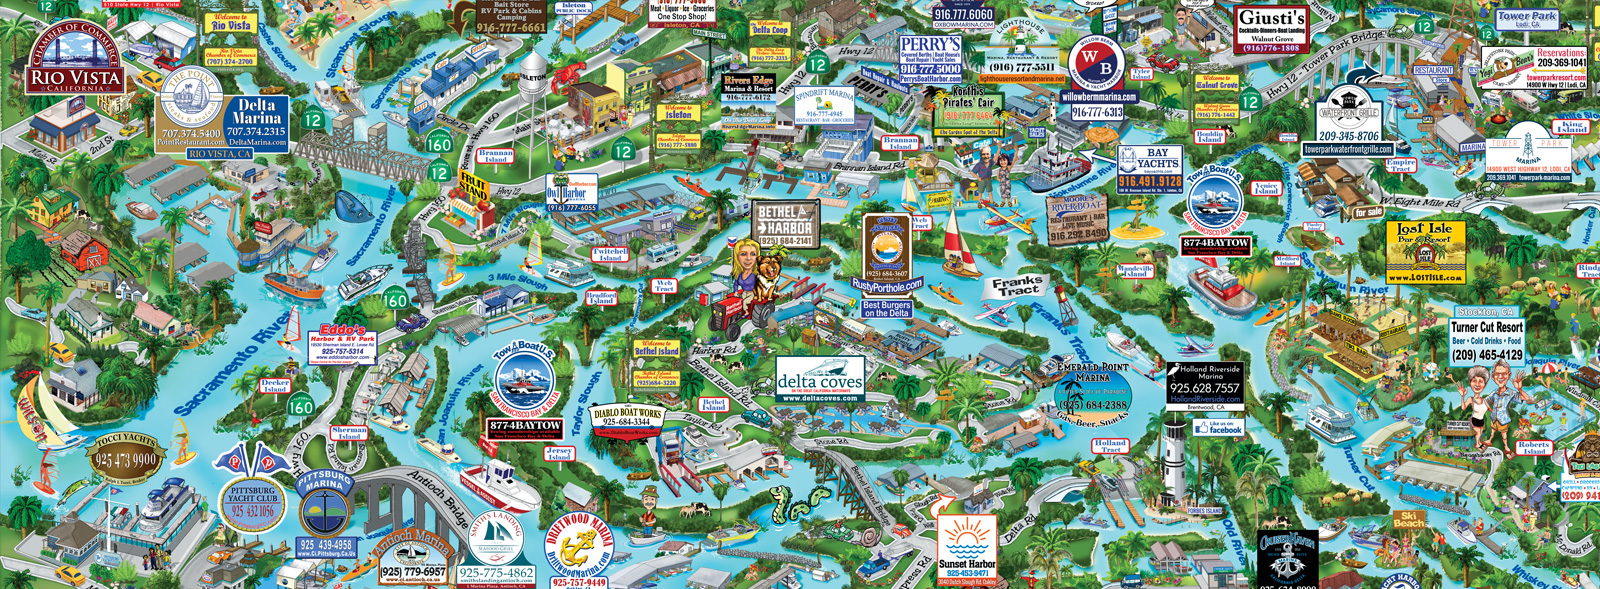 Cartoon Maps & Caricature Maps — MapCo Marketing on drawing a city map, create a city map, design a helmet,